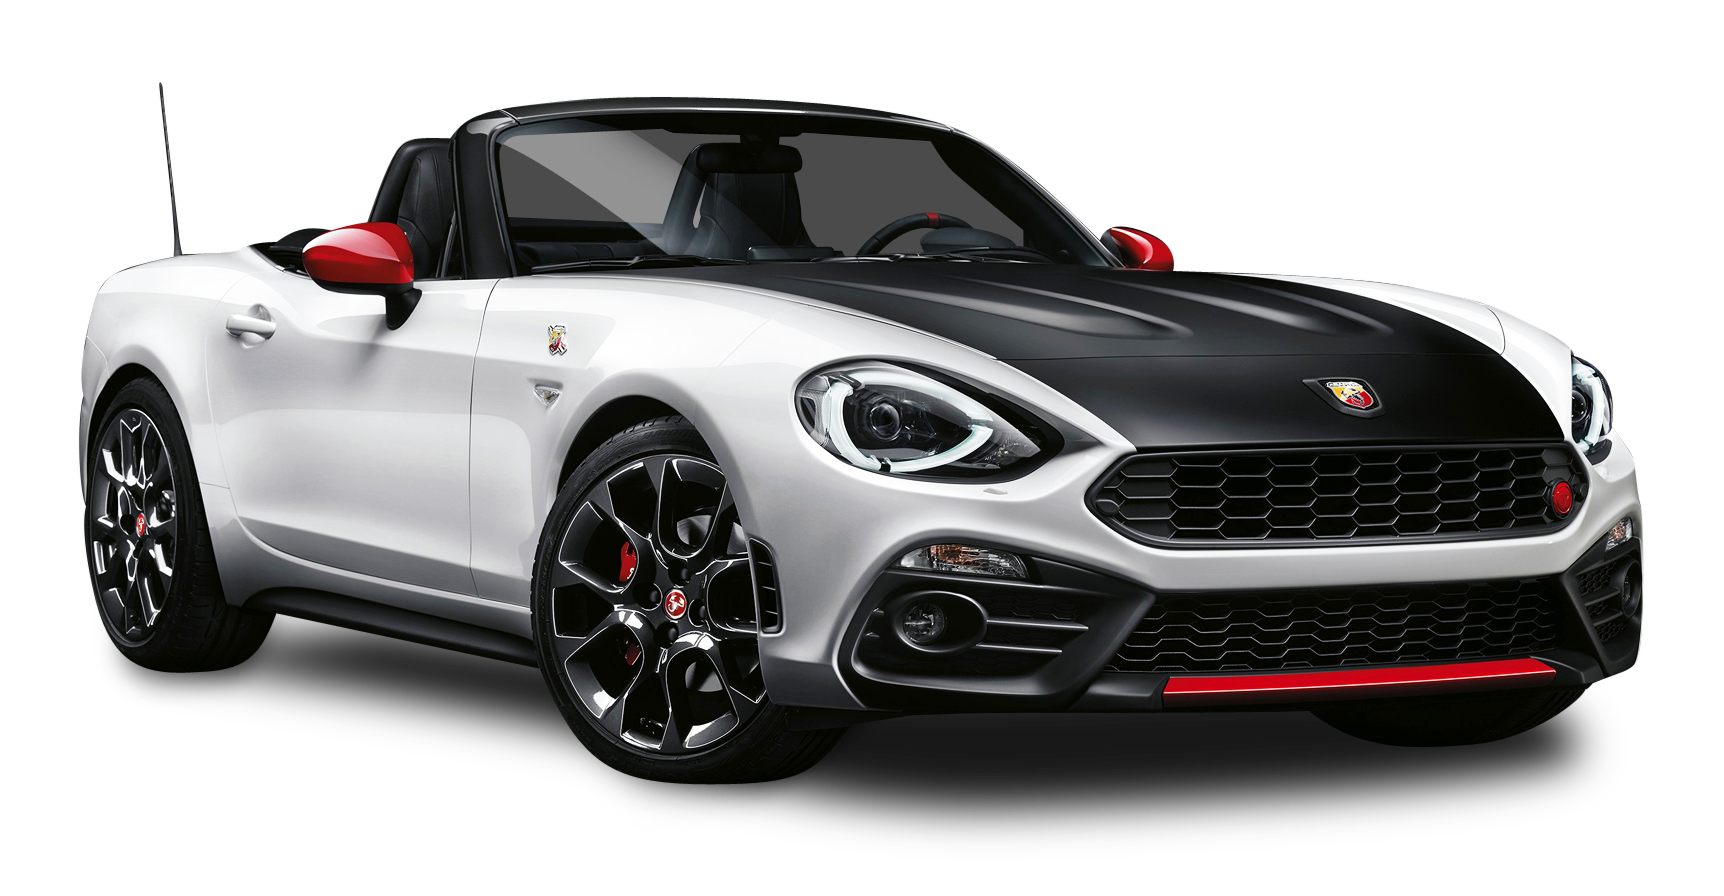 Black And White Fiat 124 Spider Abarth Car Png Image Pngpix